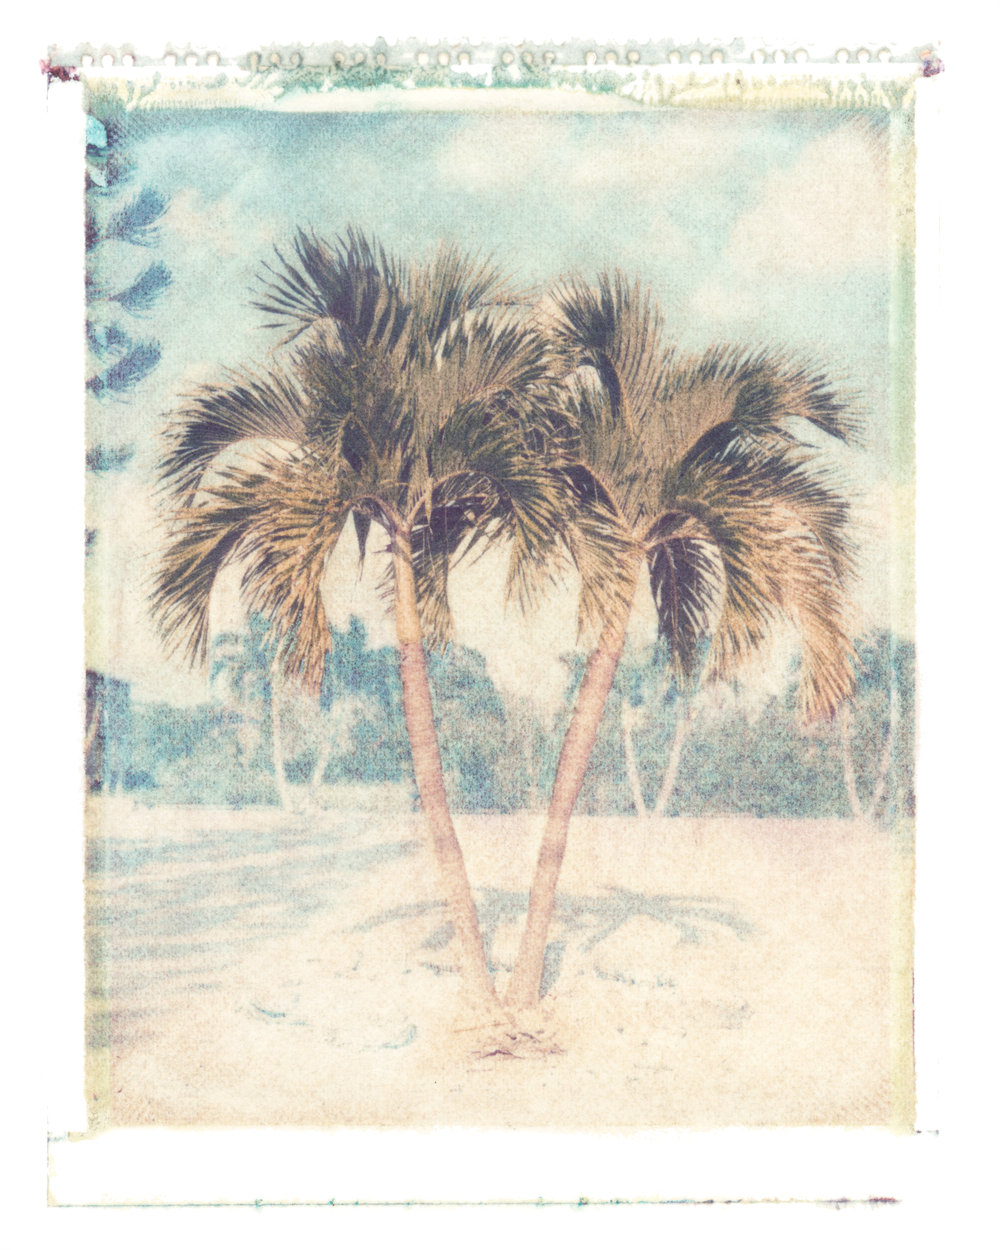 Veitchia Merrillii  Big Pine Key, Florida, 1995